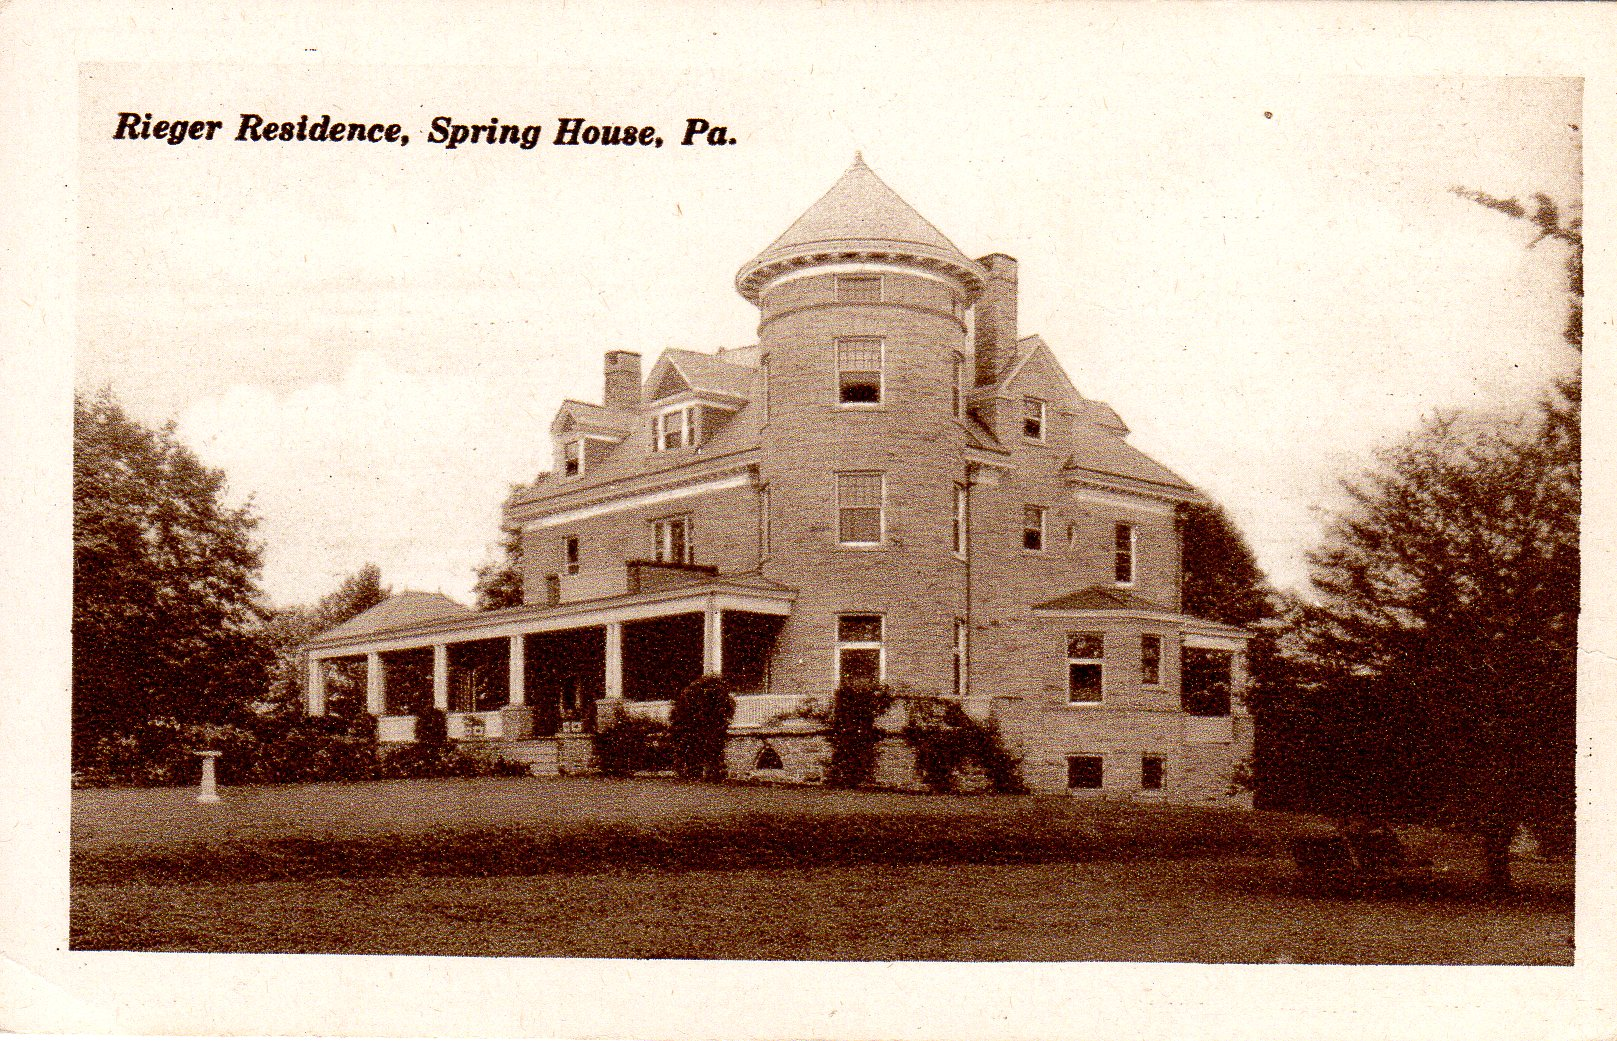 Post Card Collection (E Simon)_2682_76_Rieger Residence, Spring House, Pa